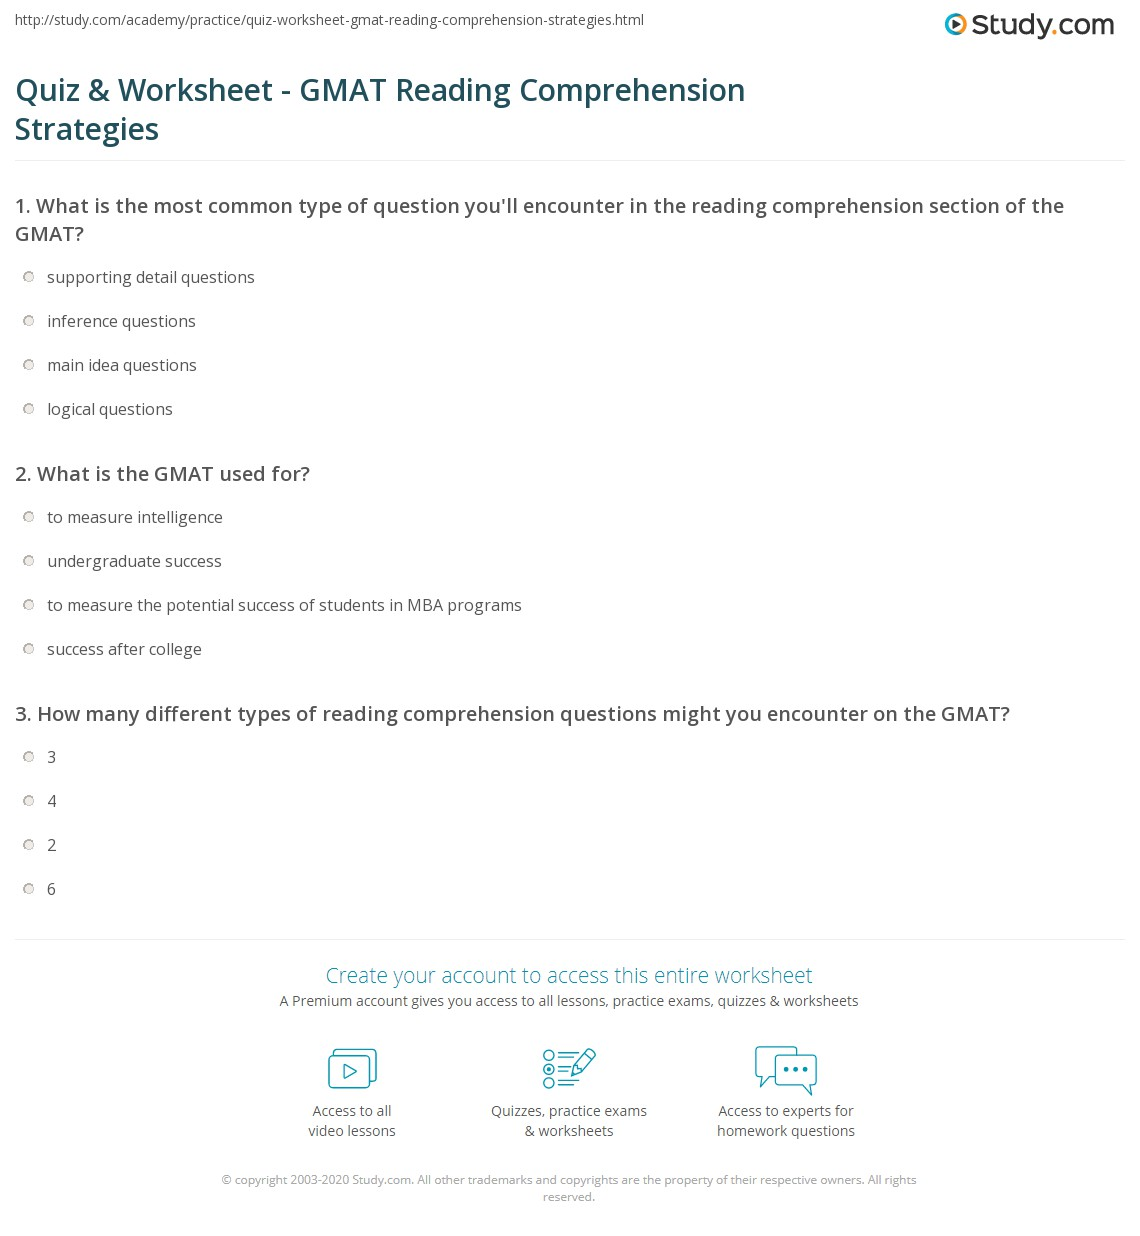 Worksheets Reading Comprehension Strategies Worksheets quiz worksheet gmat reading comprehension strategies study com print techniques for the worksheet